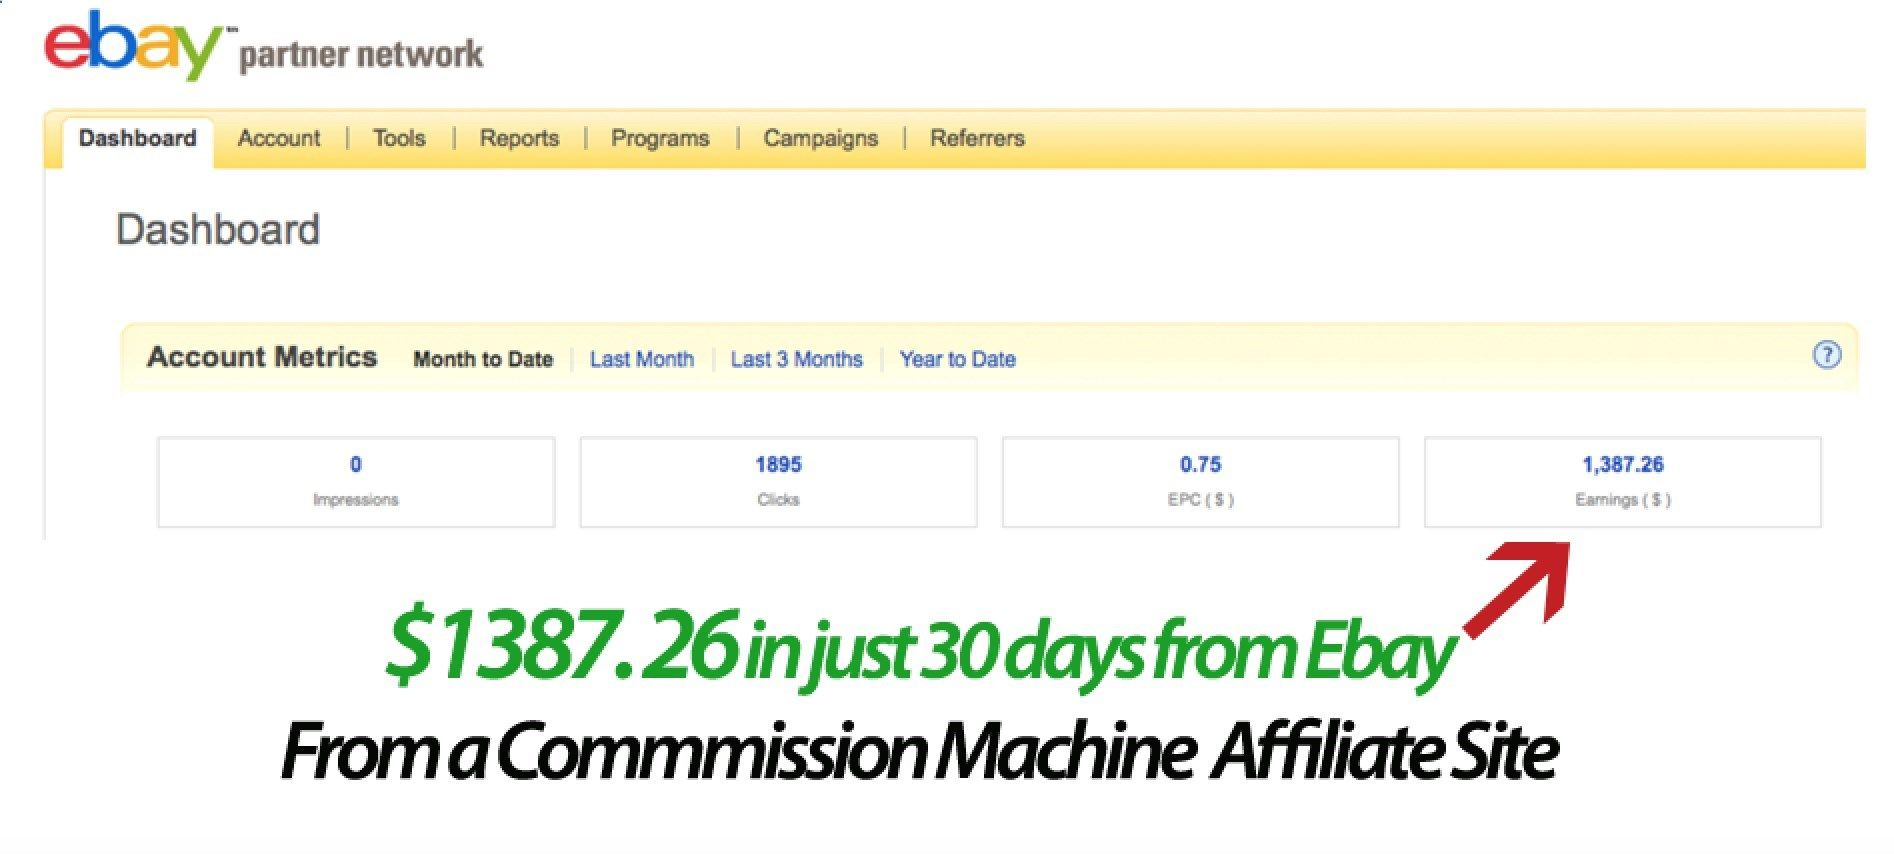 internet-mktg.com... - Get 3 in 1 Affiliate Ecommerce site for Amazon, Ebay, Aliexpress in 60 seconds flat. This super easy WordPress plugin can turn your normal WordPress website into complete, good looking, ecommerce affiliate site in 60 seconds flat . . . #amazonaffiliates #howtomakeamazonaffiliatesites #amazonaffiliatesite #amazononlinestore #wpcommissionmachine #ebayaffiliatesite #ebayaffiliate #aliexpressaffiliate #aliexpressaffiliatesite